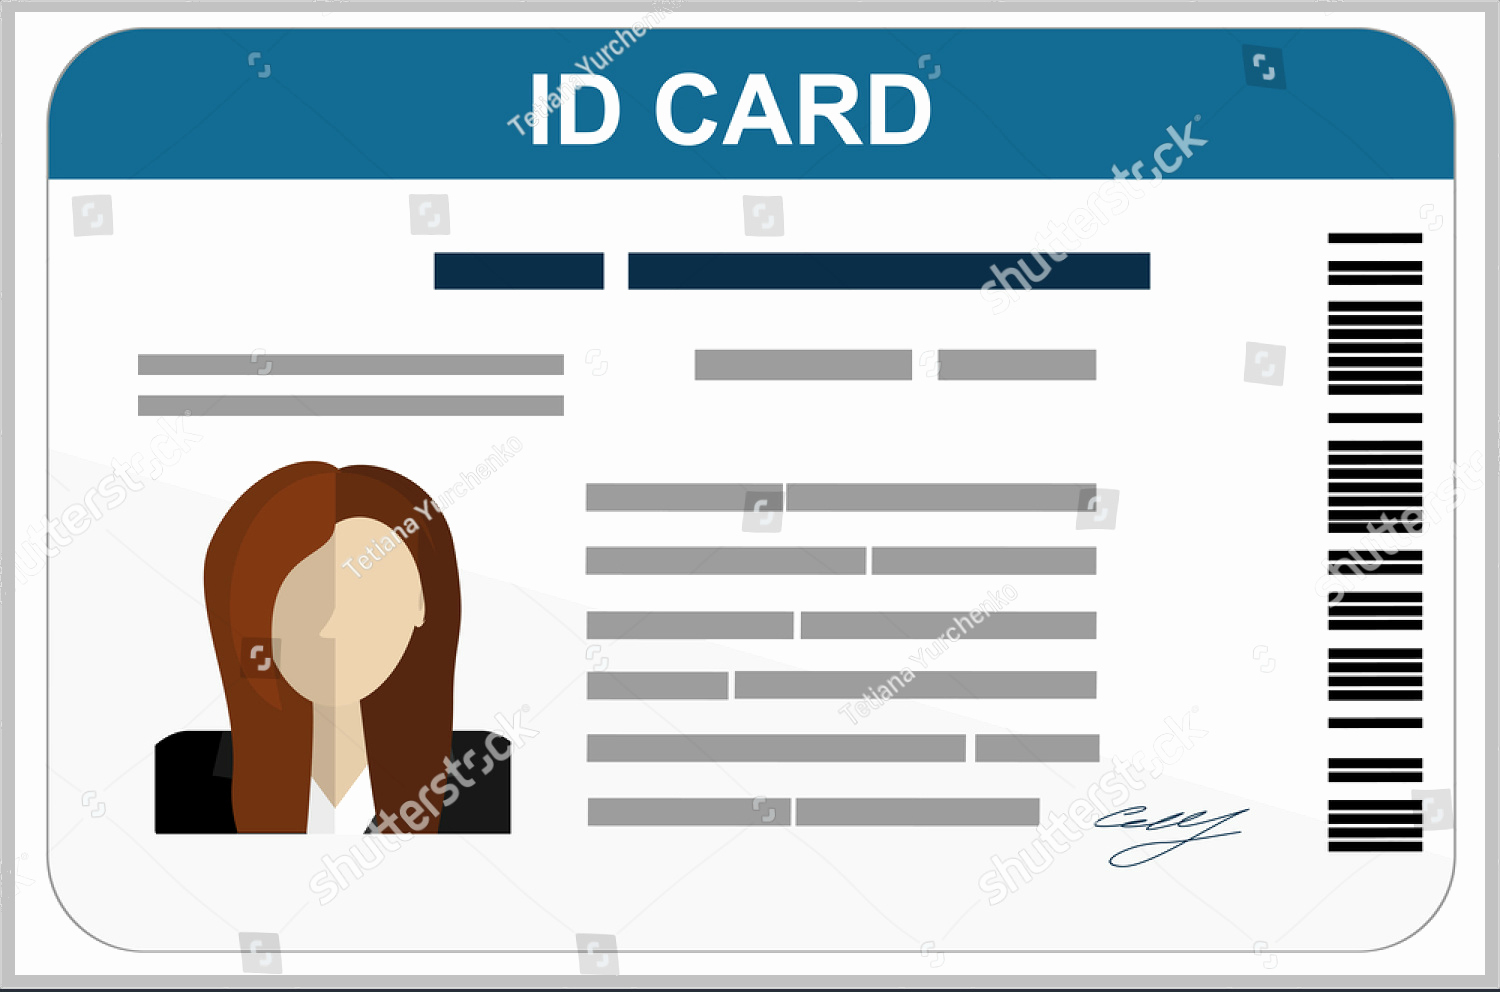 006 Free Printable Id Cards Templates Card Template Beautiful - Free Printable Id Cards Templates